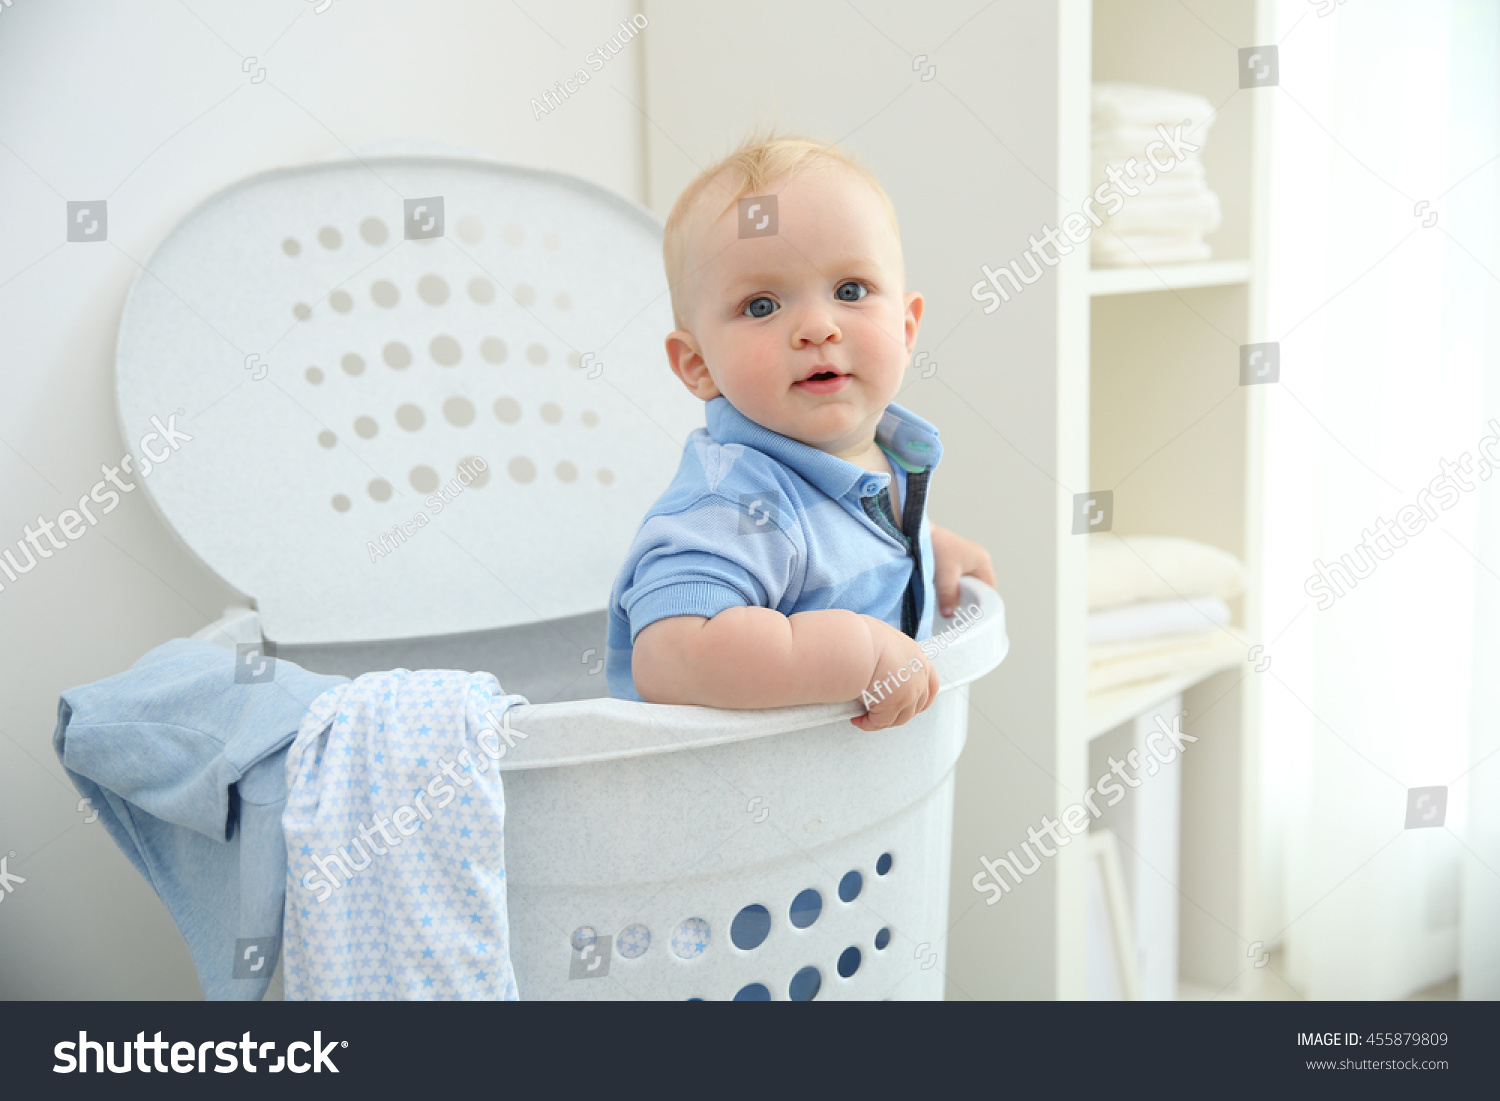 Baby Laundry Bin Baby In Laundry Basket Stock Photo 455879809 Shutterstock